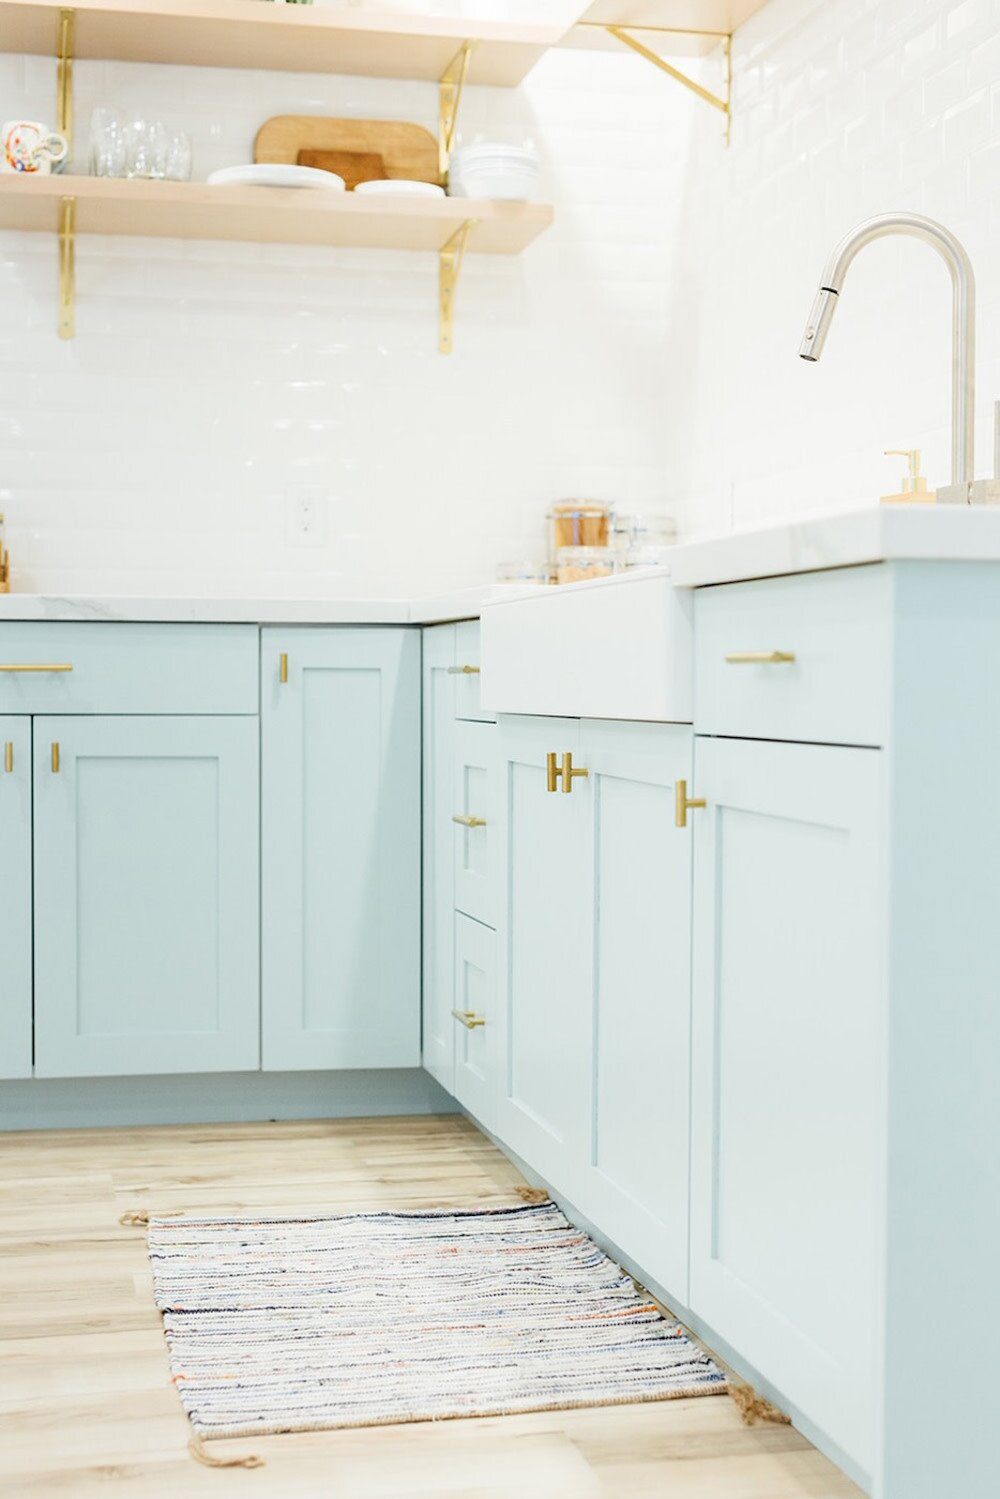 light blue kitchen cabinets and open shelving